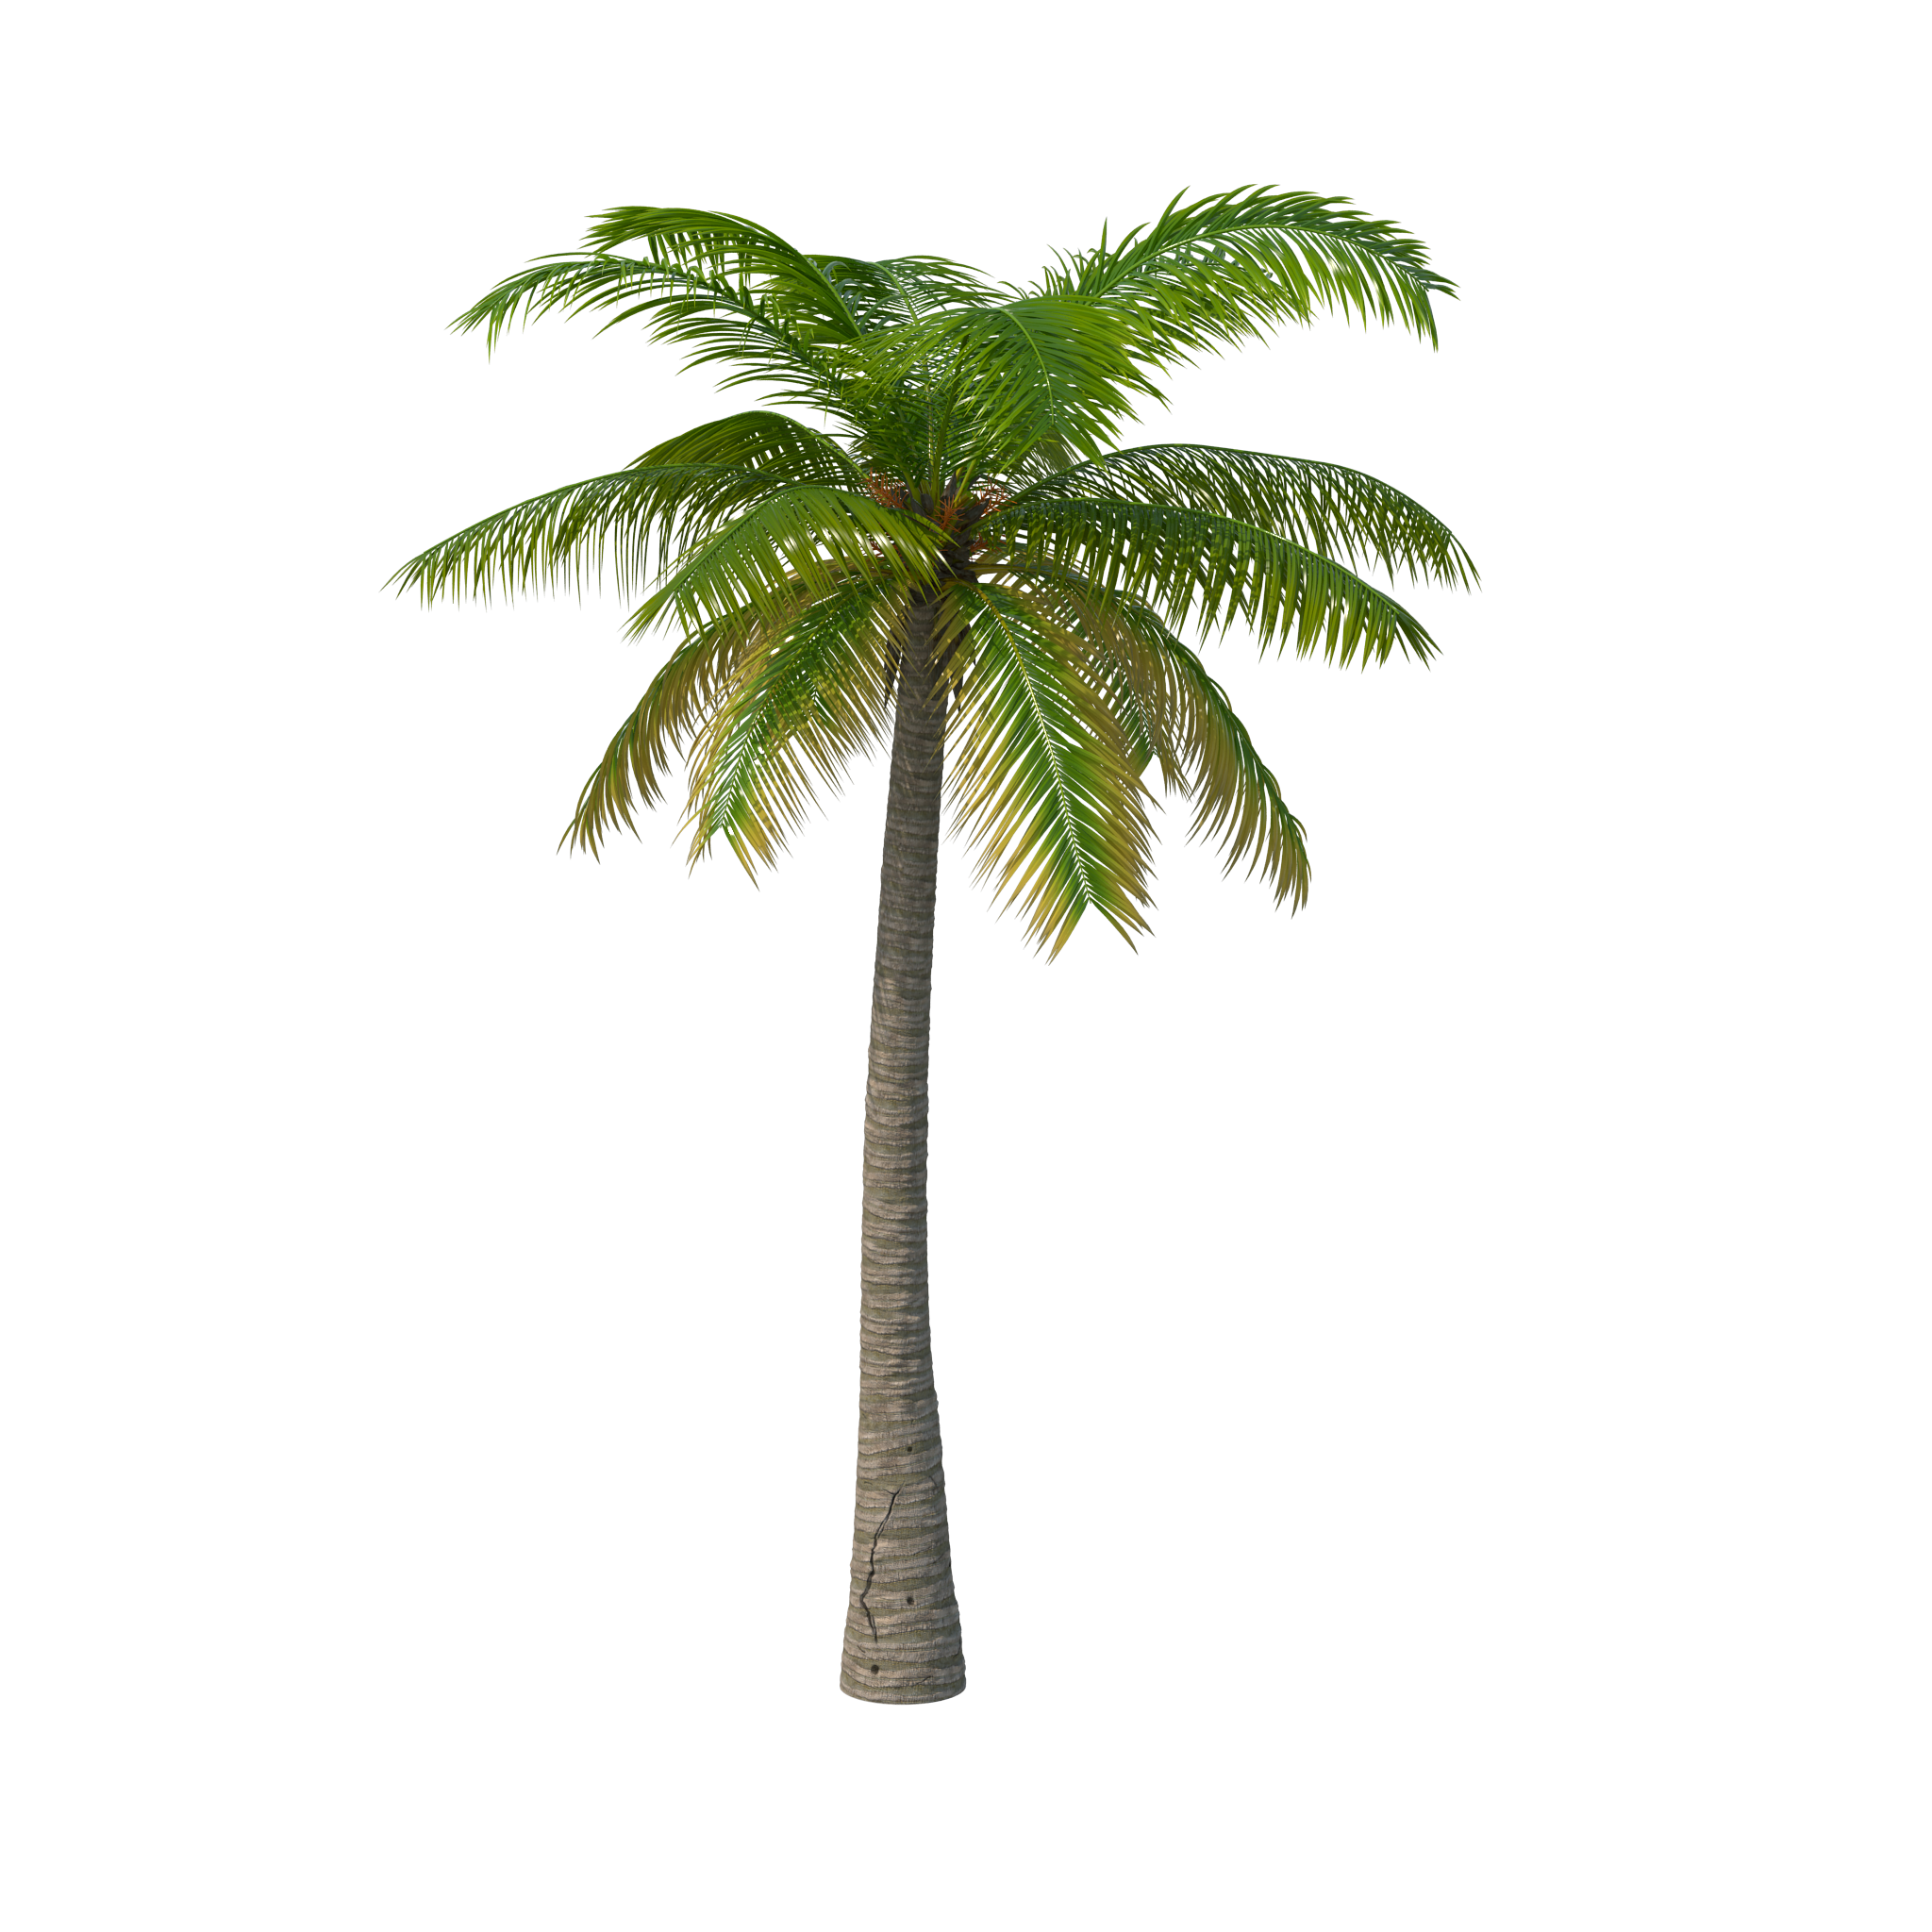 Palm Tree PNG Image.